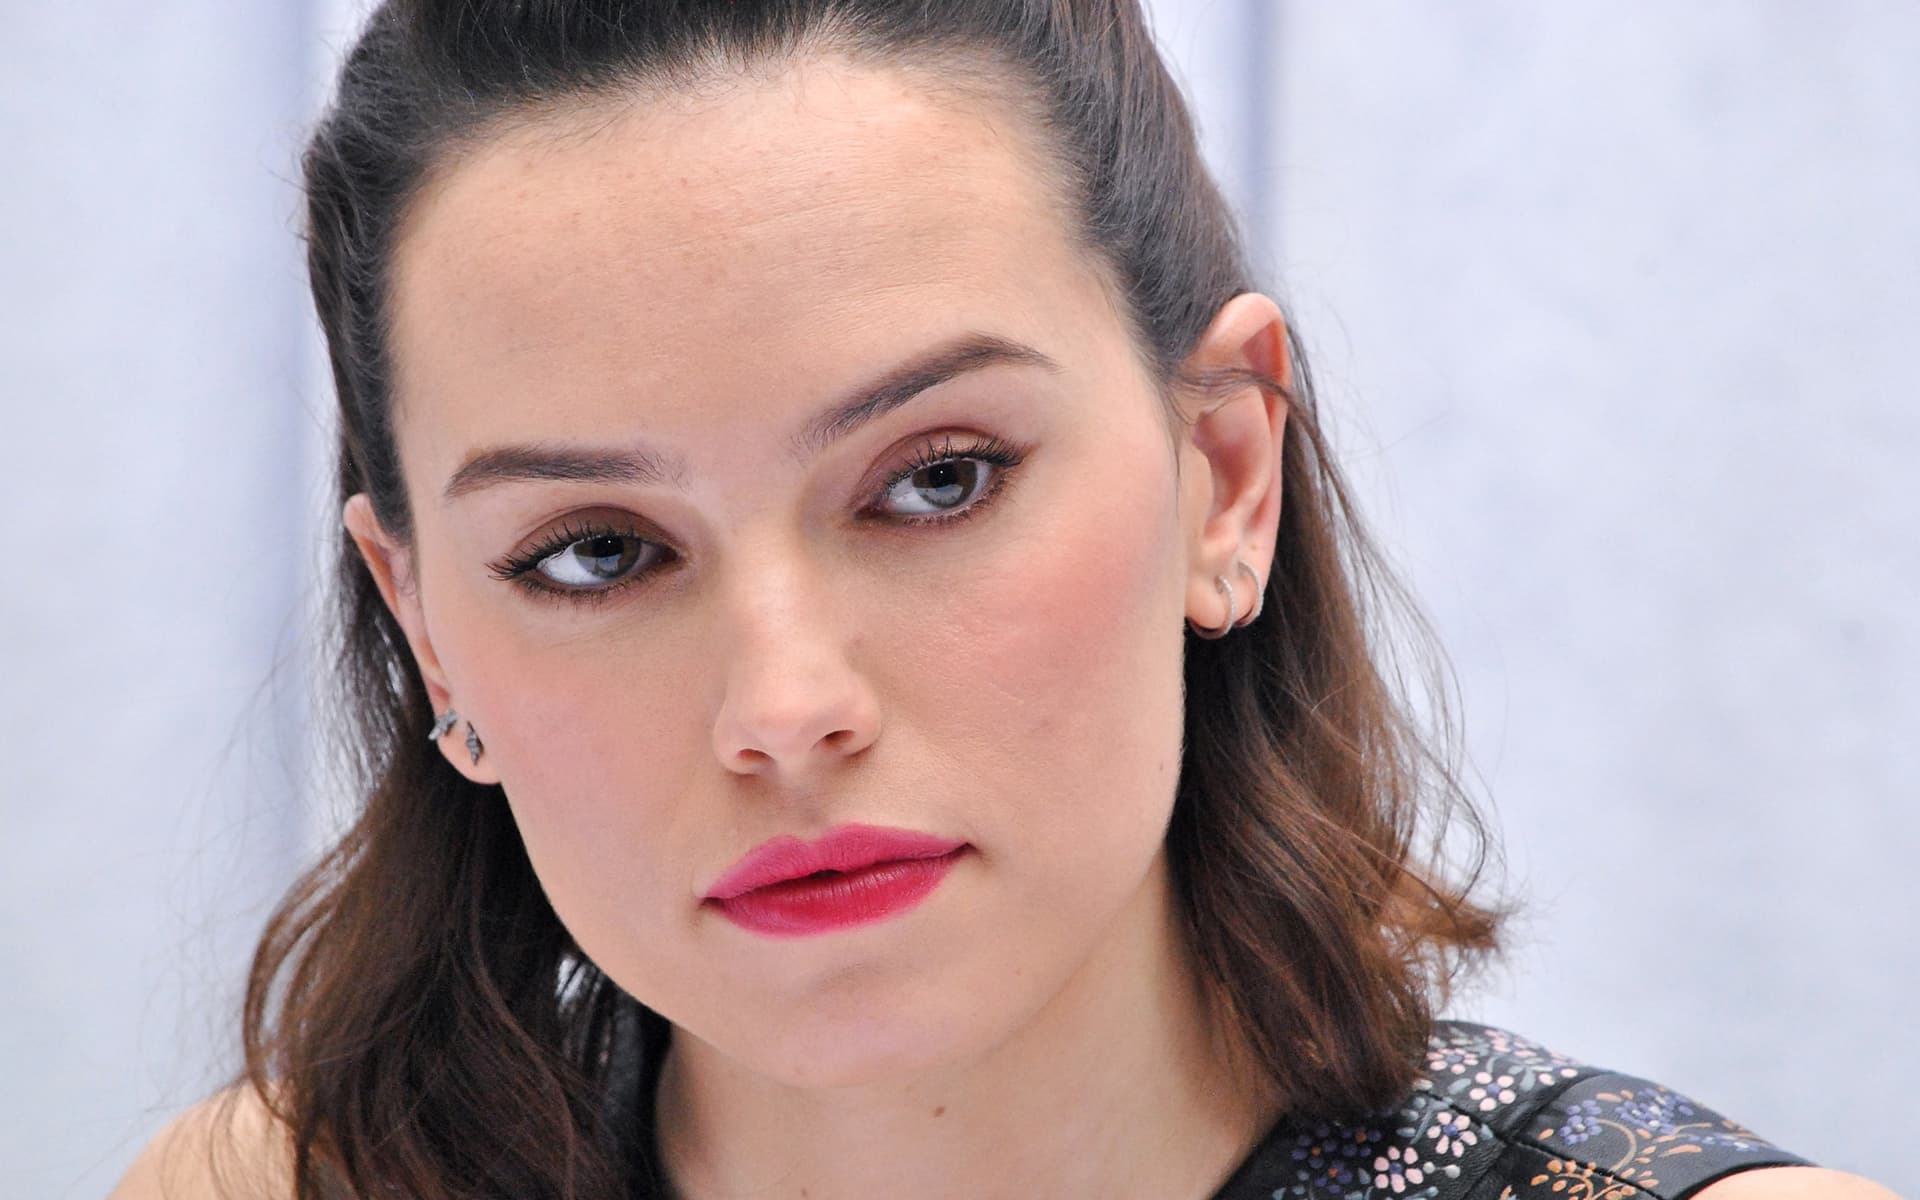 Daisy Ridley eyes pictures